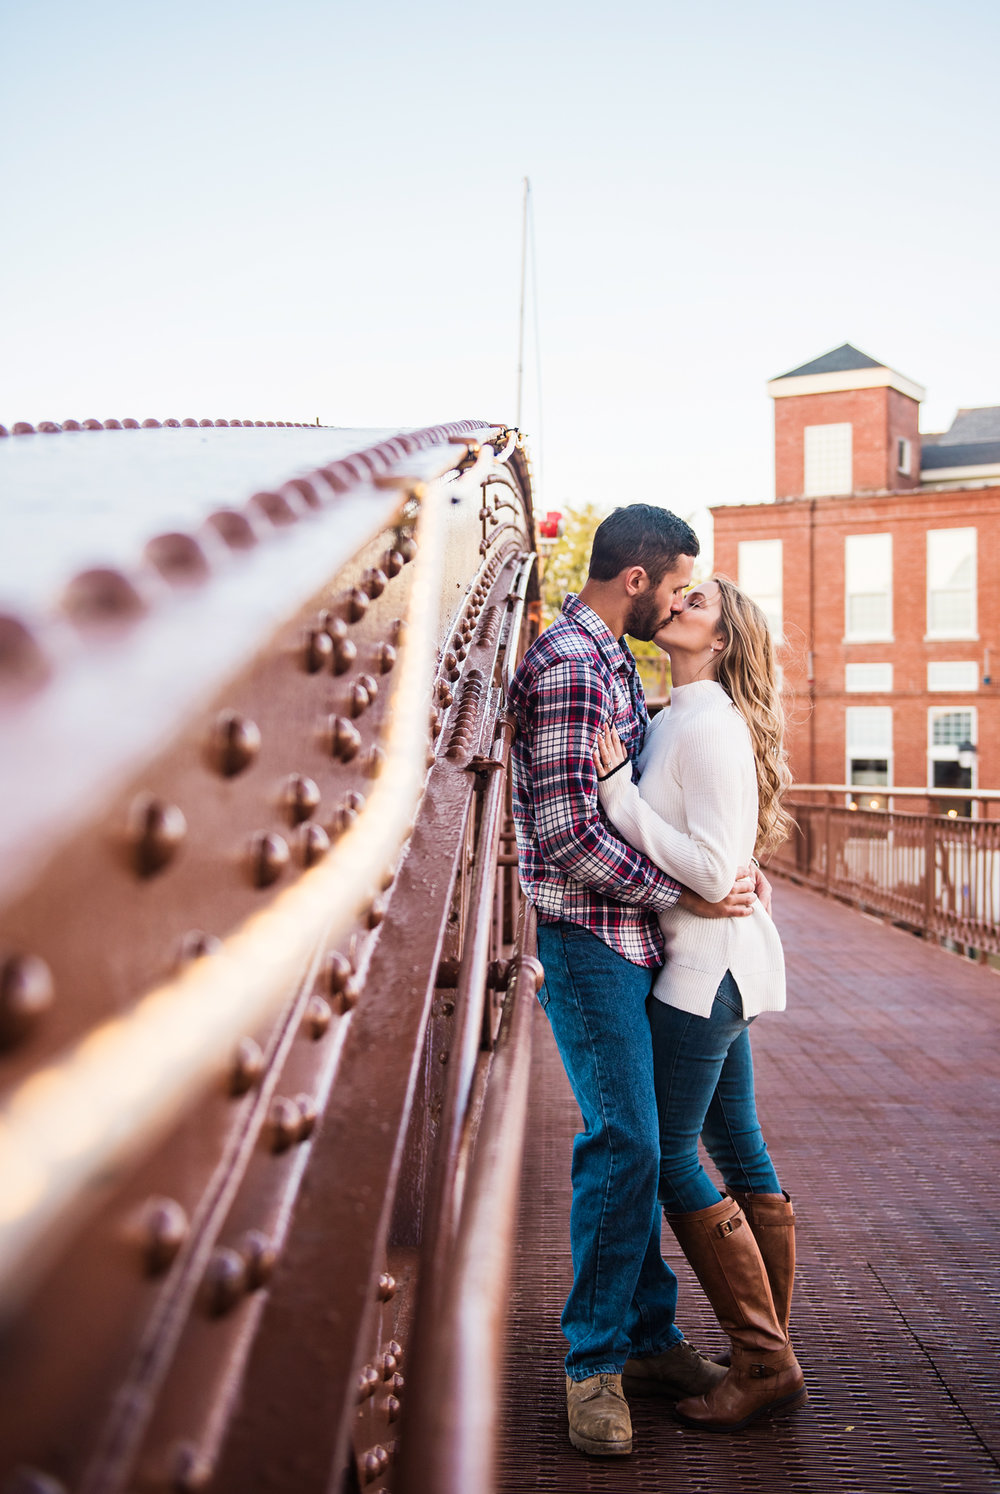 Village_of_Fairport_Rochester_Engagement_Session_JILL_STUDIO_Rochester_NY_Photographer_DSC_8832.jpg